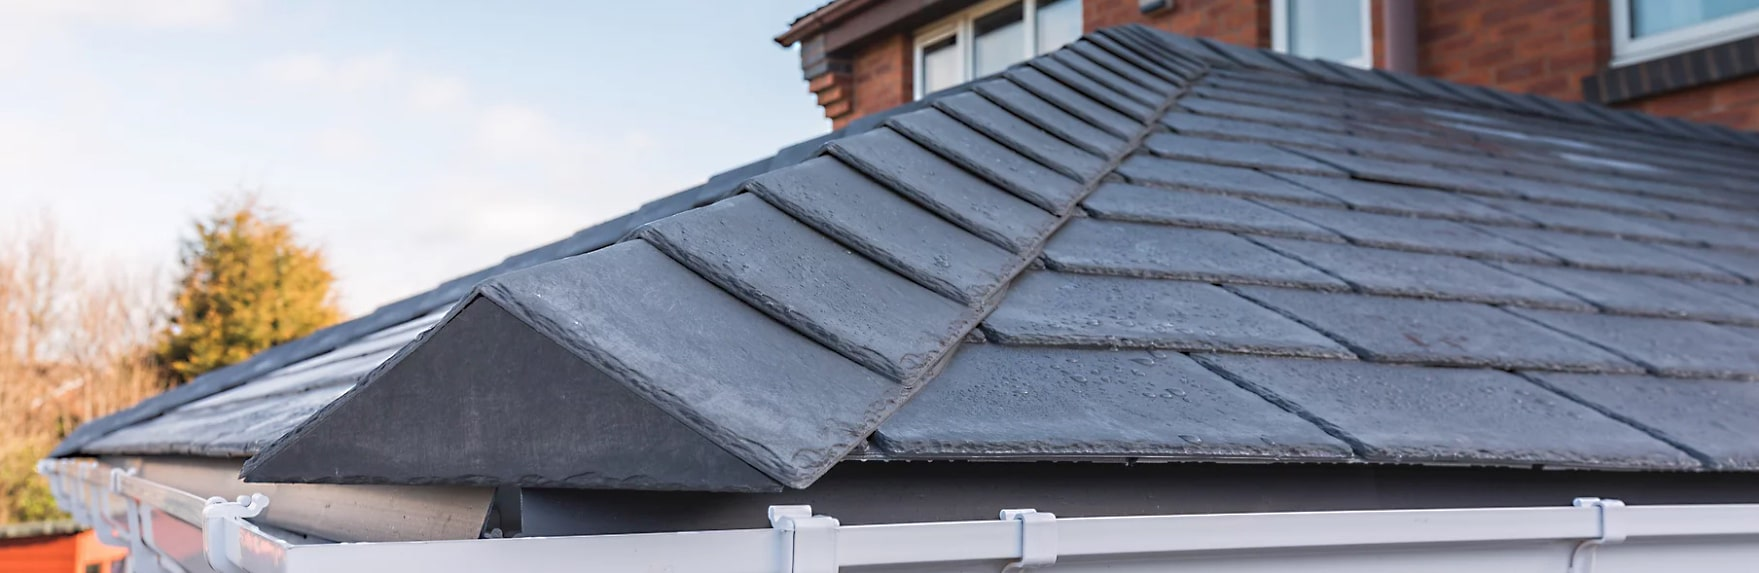 Close up of conservatory roof tiles